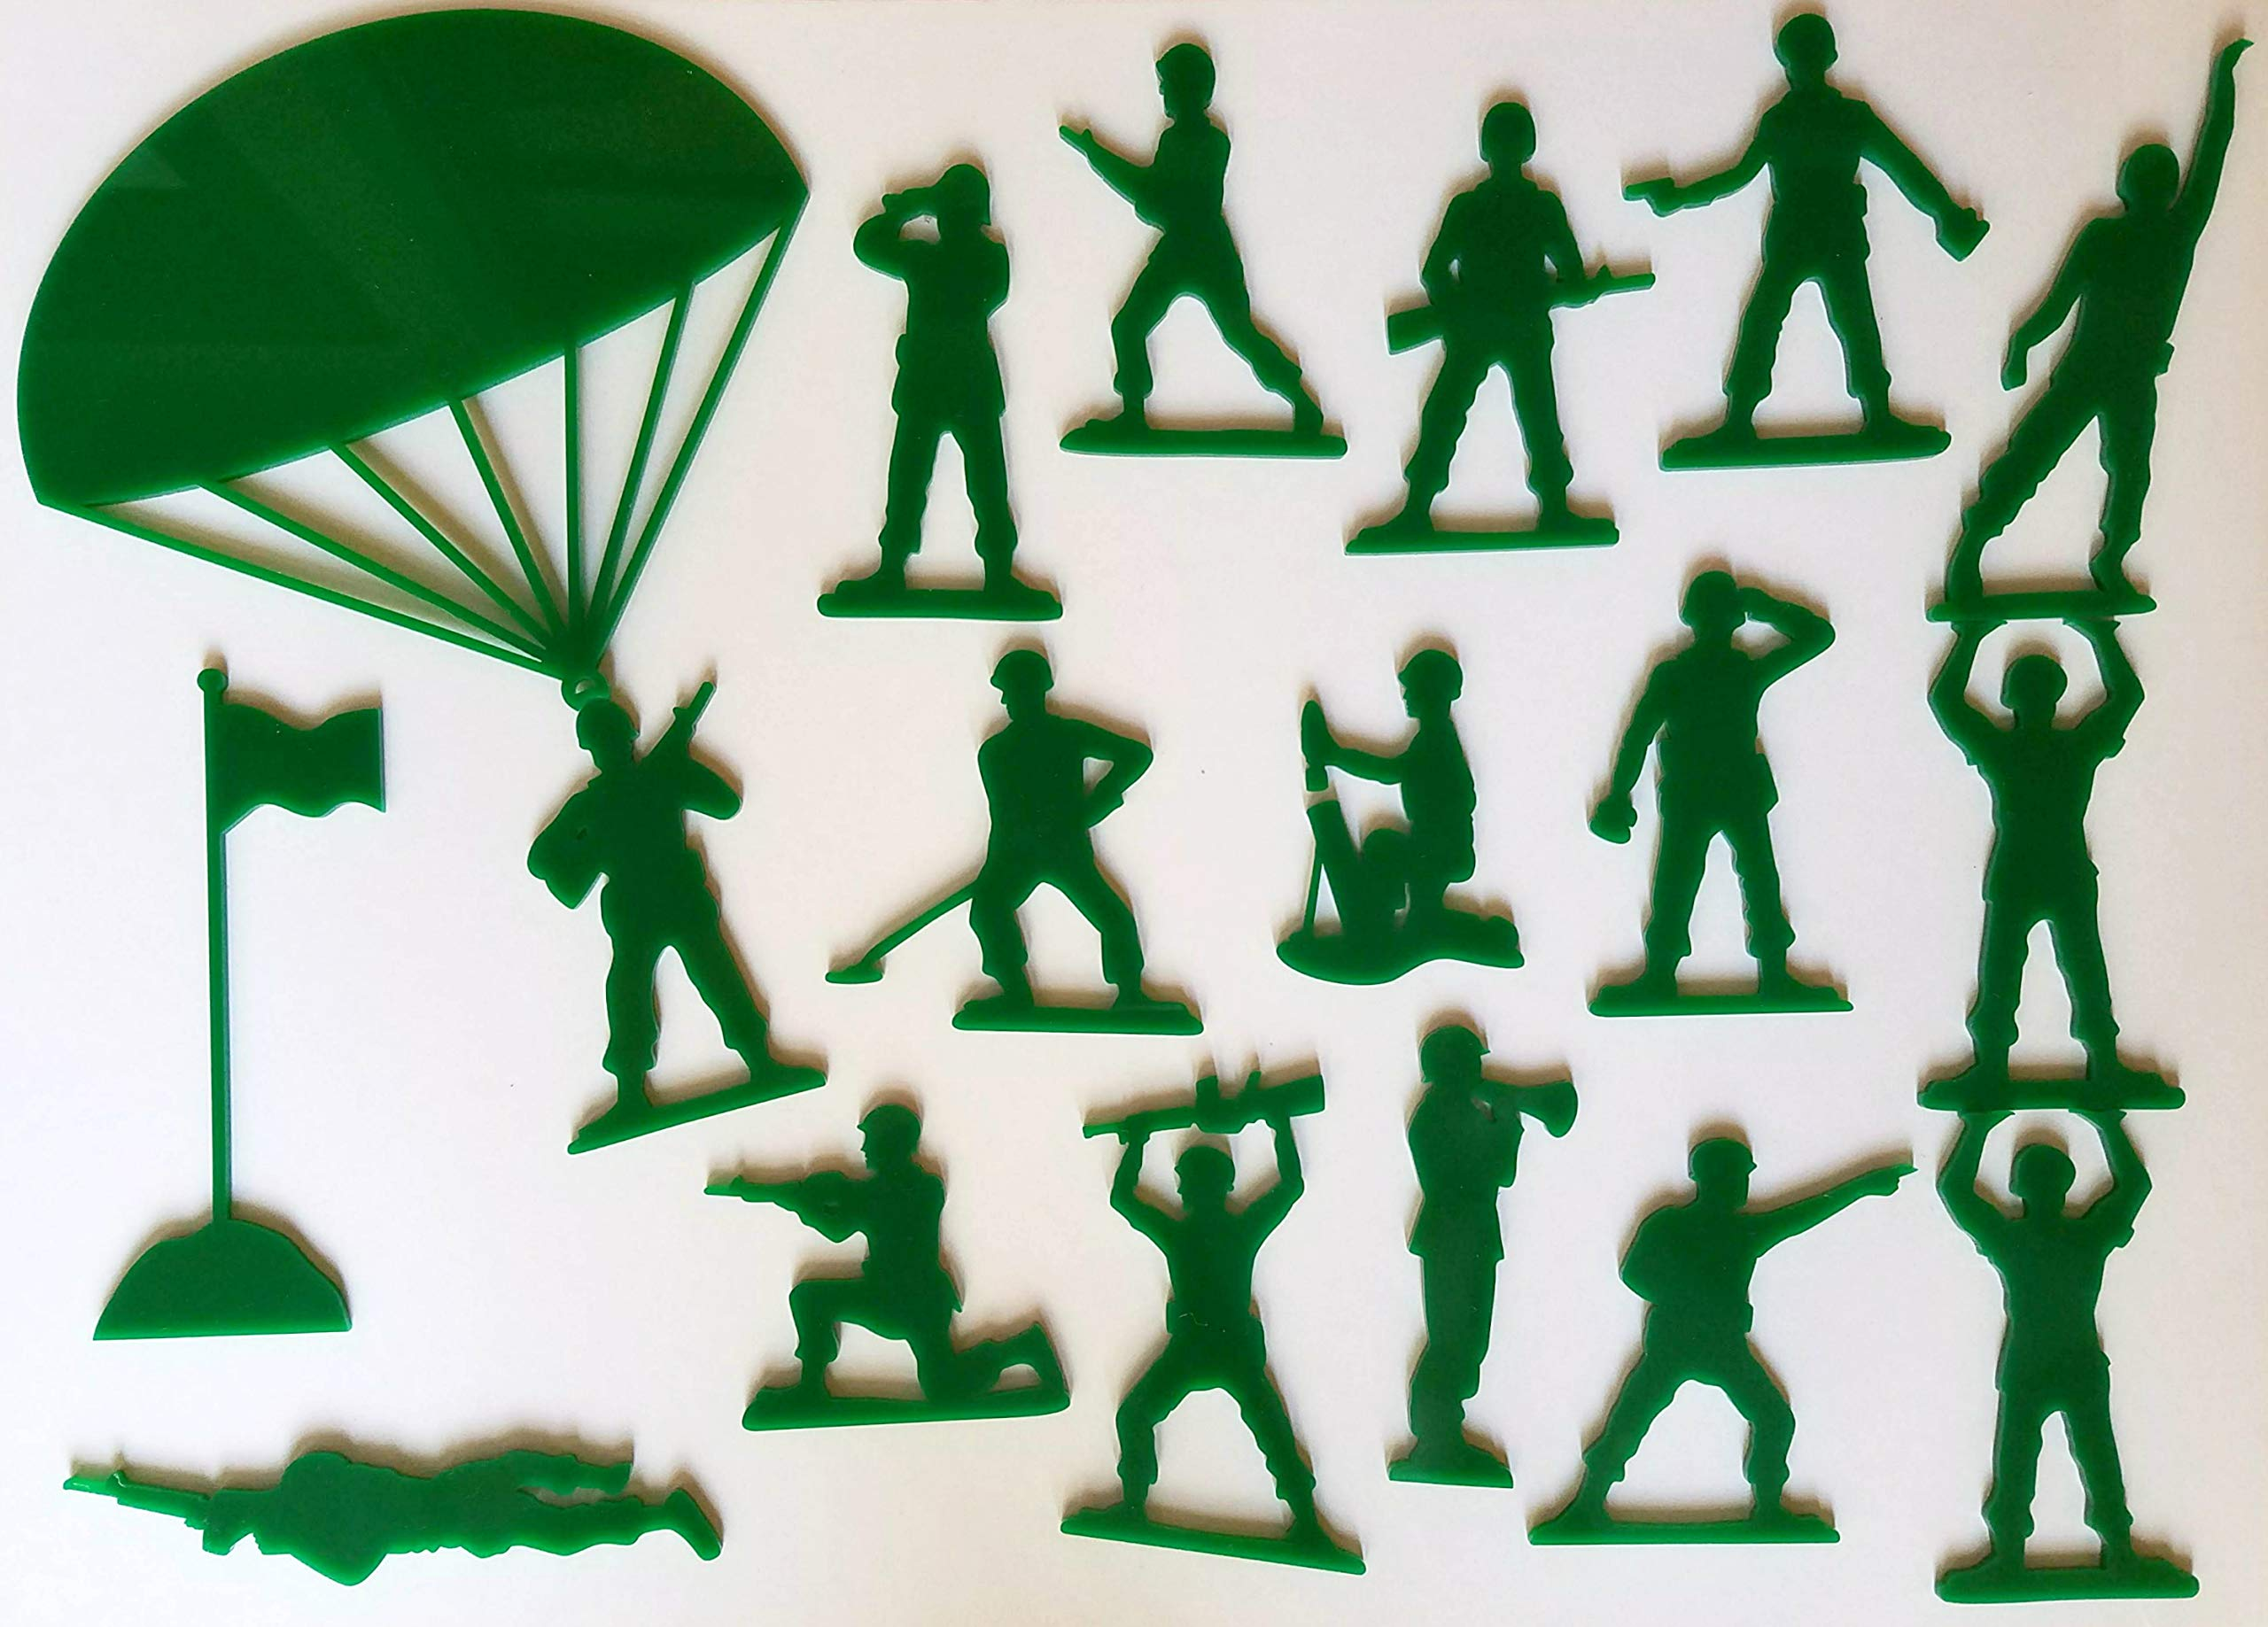 Set of 18 Army Men Acrylic Green Wall Decorations for a Kid's Toy Story Room or Andy's Room Nursery